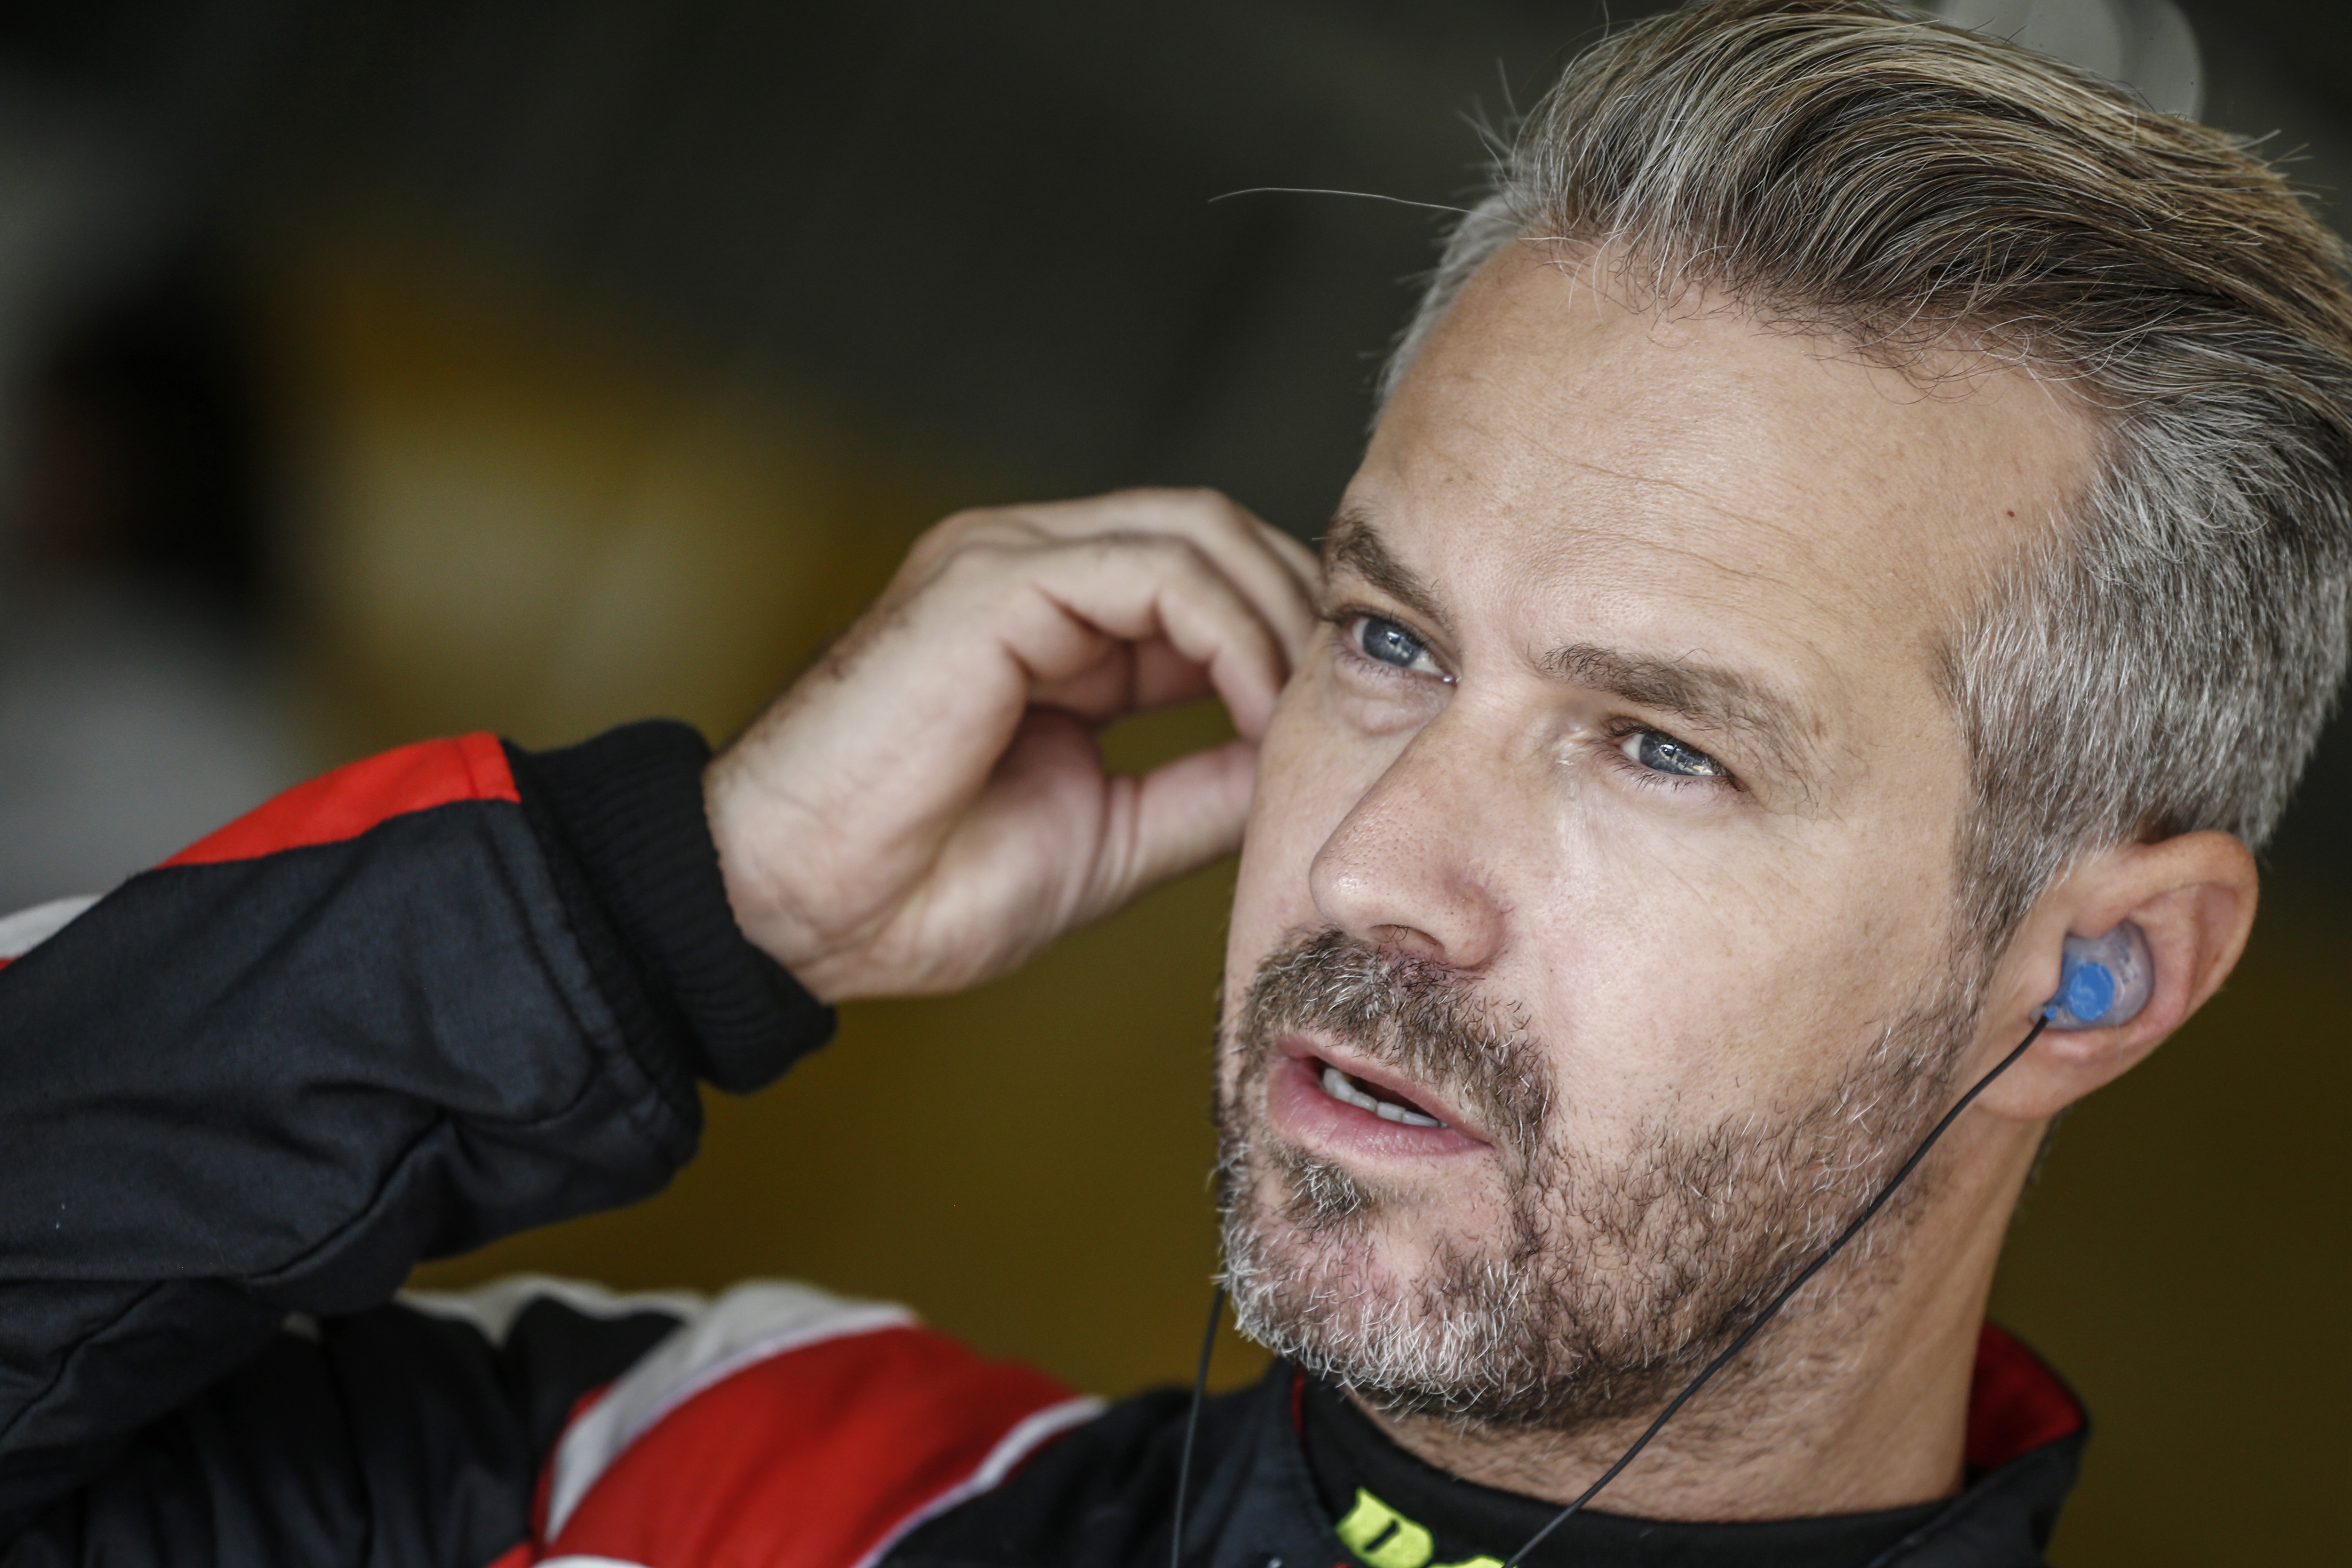 WTCR's Monteiro gets extra Nürburgring Nordschleife practice